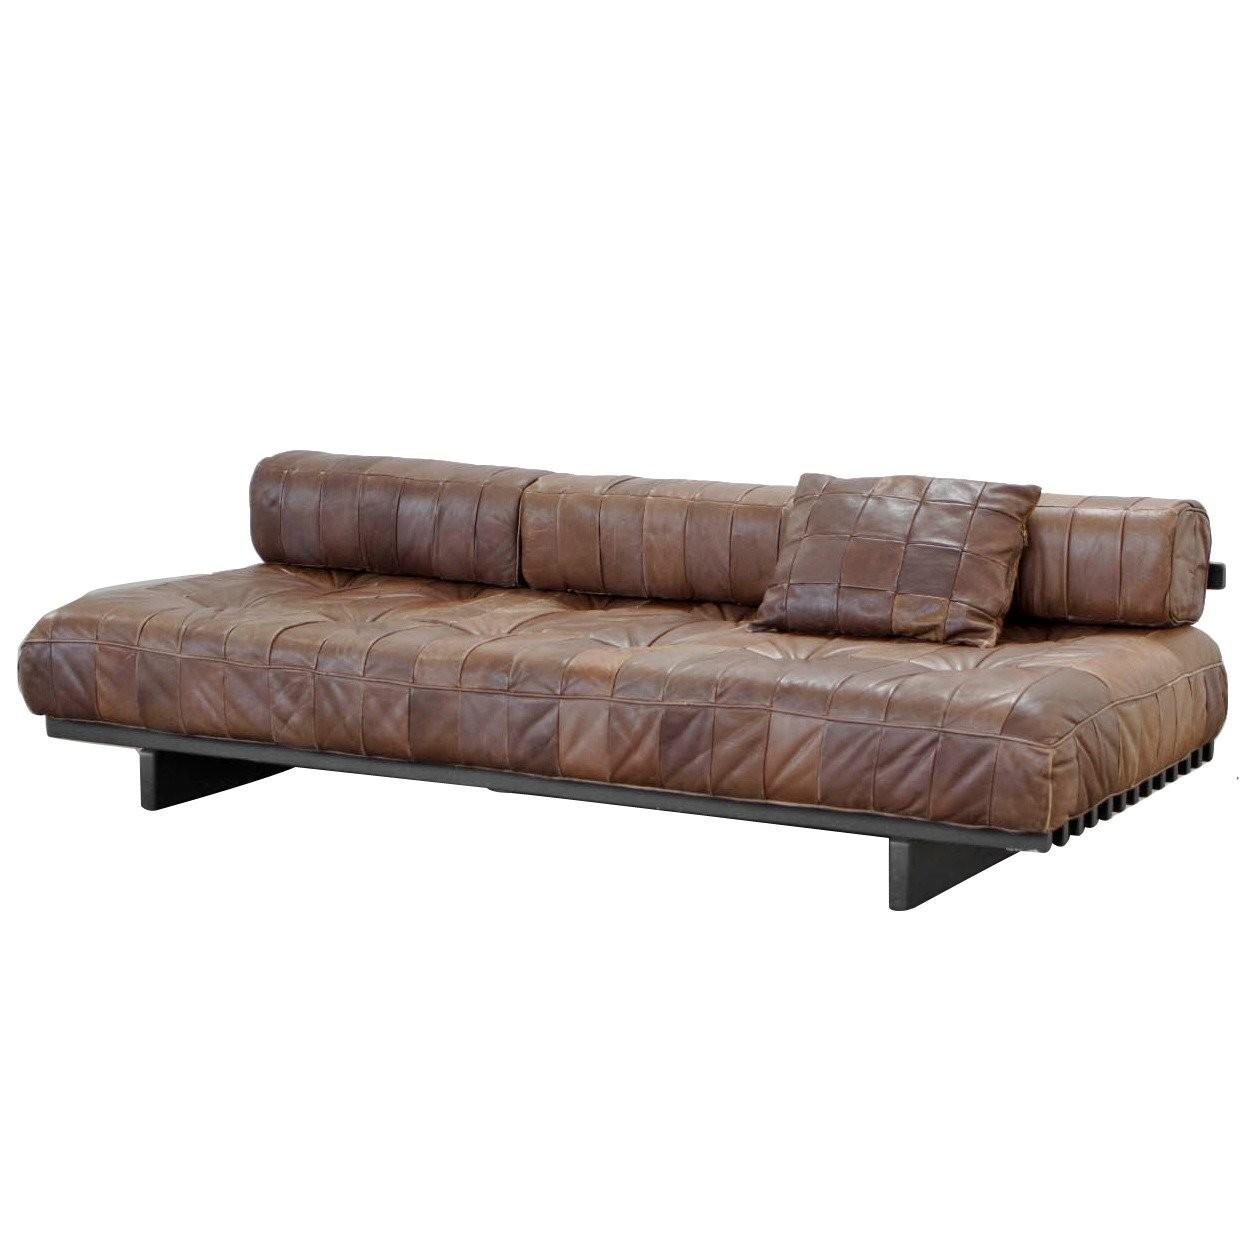 Daybed Couches Select Modern Danish